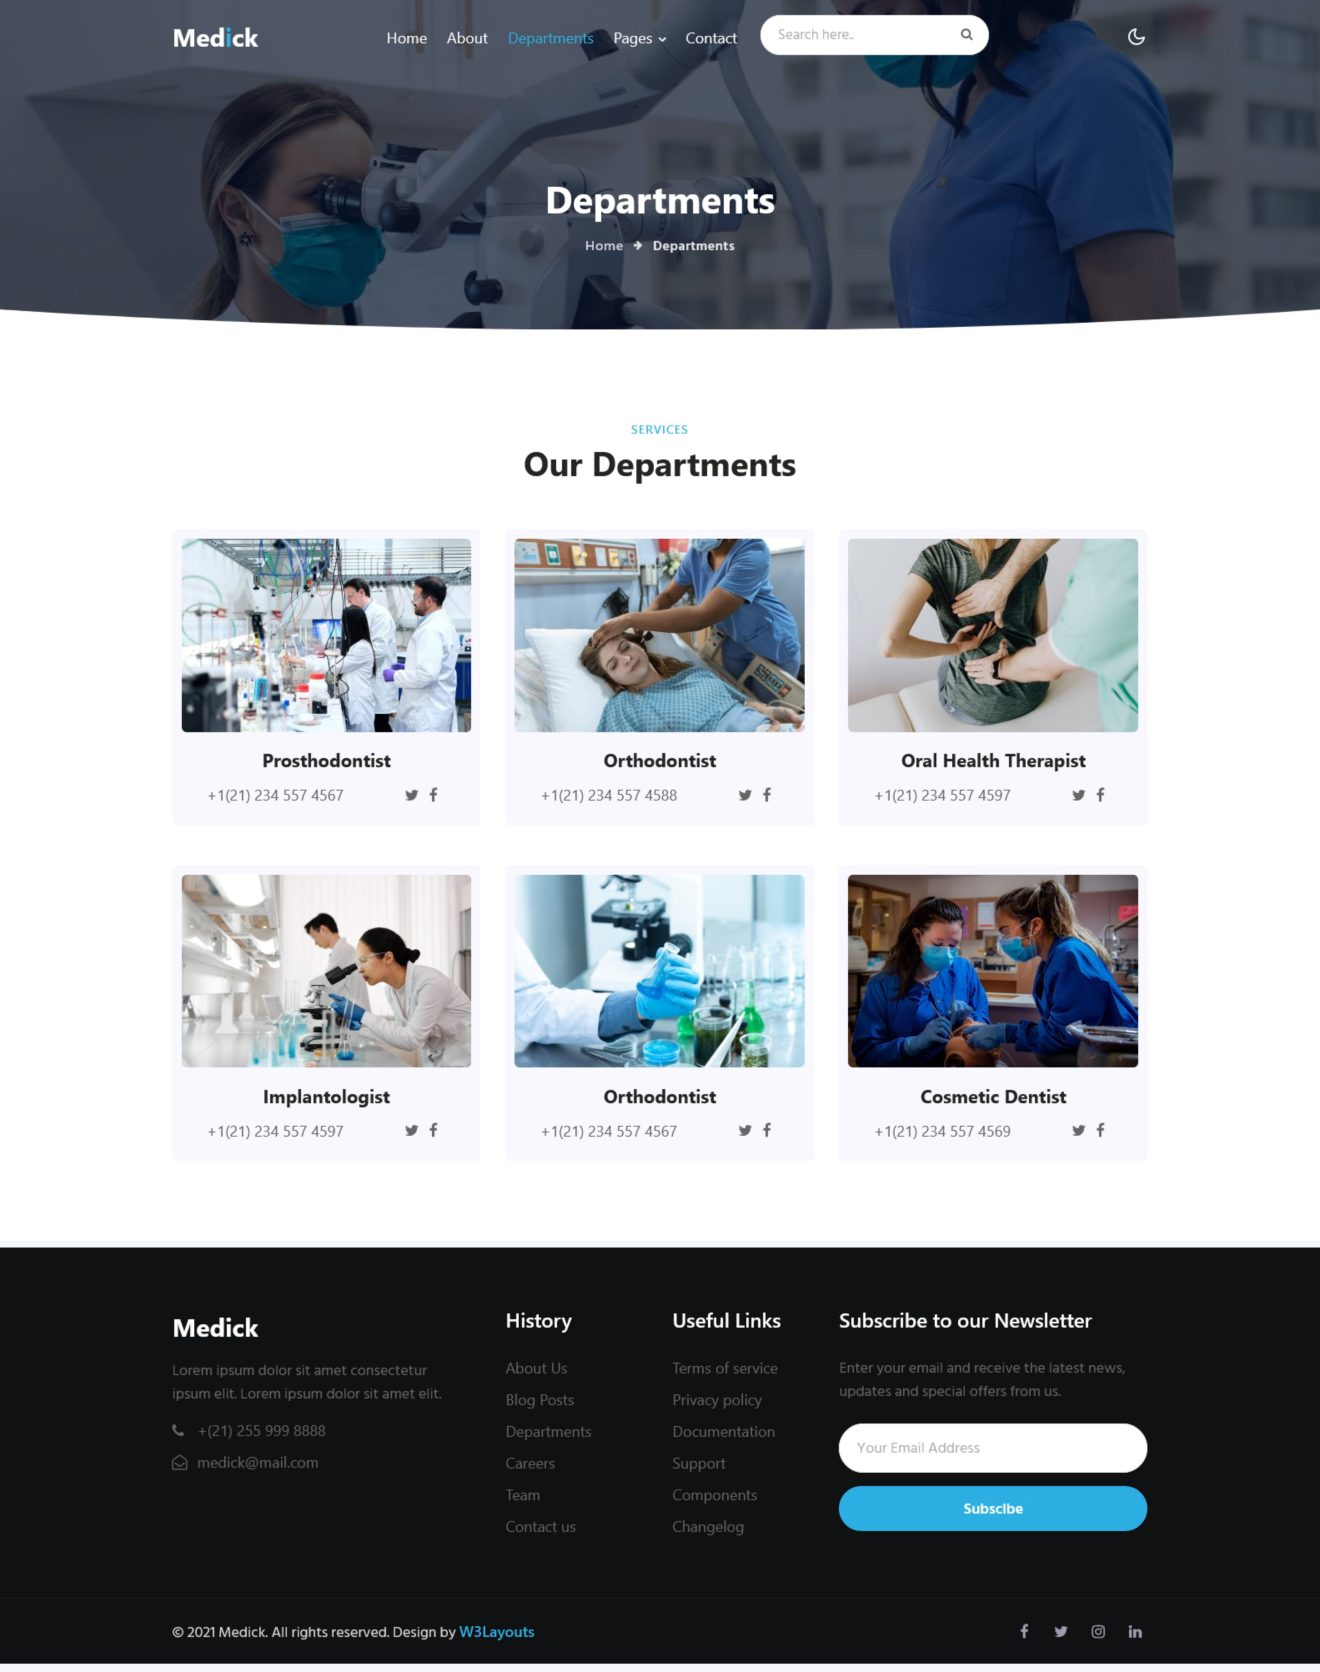 medick departments page